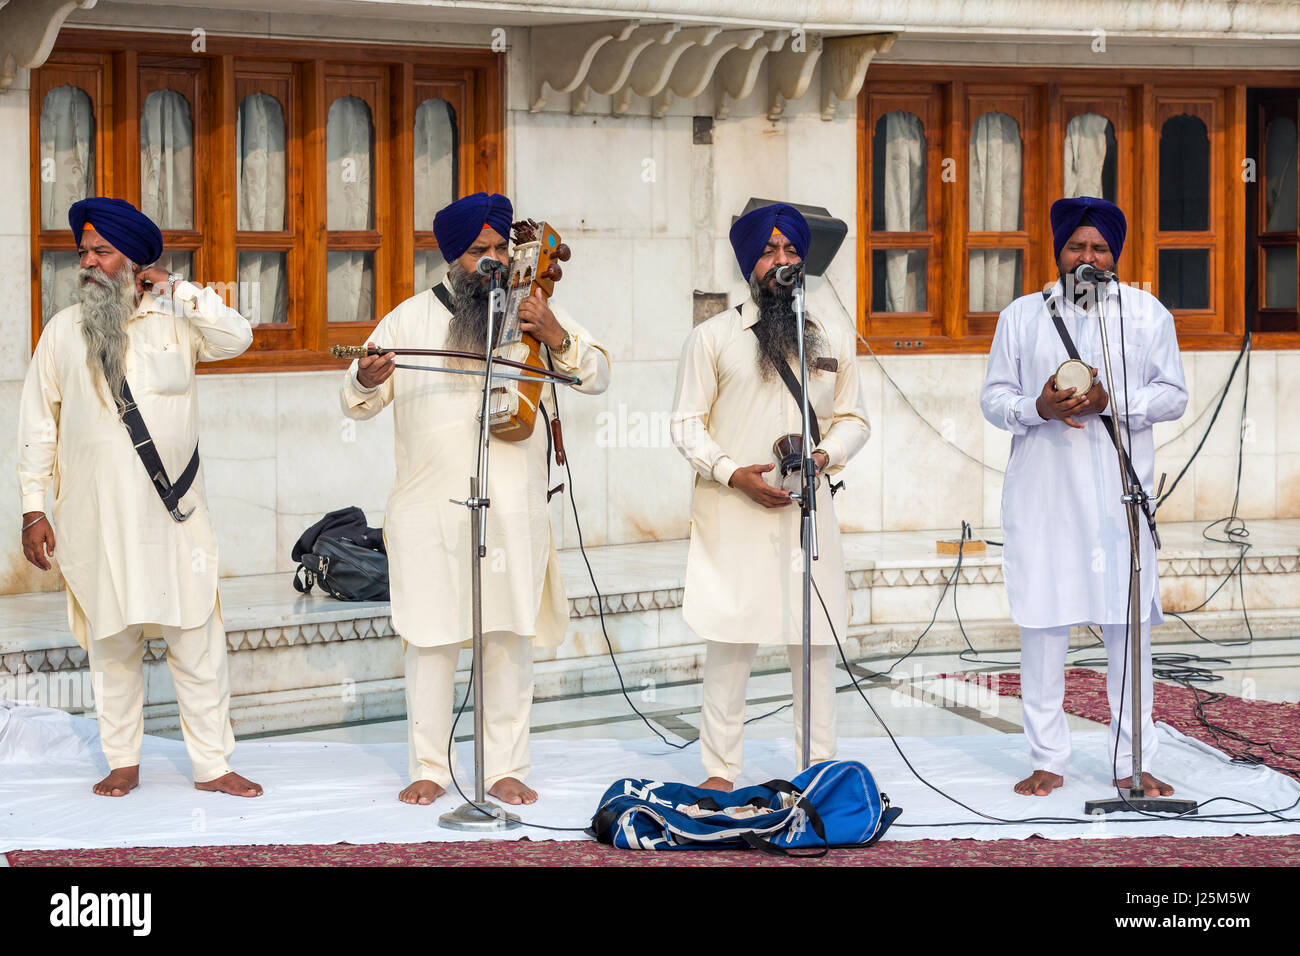 Religious songs being performed by a musical troupe inside the Golden Temple, Amritsar, Punjab, India - Stock Image